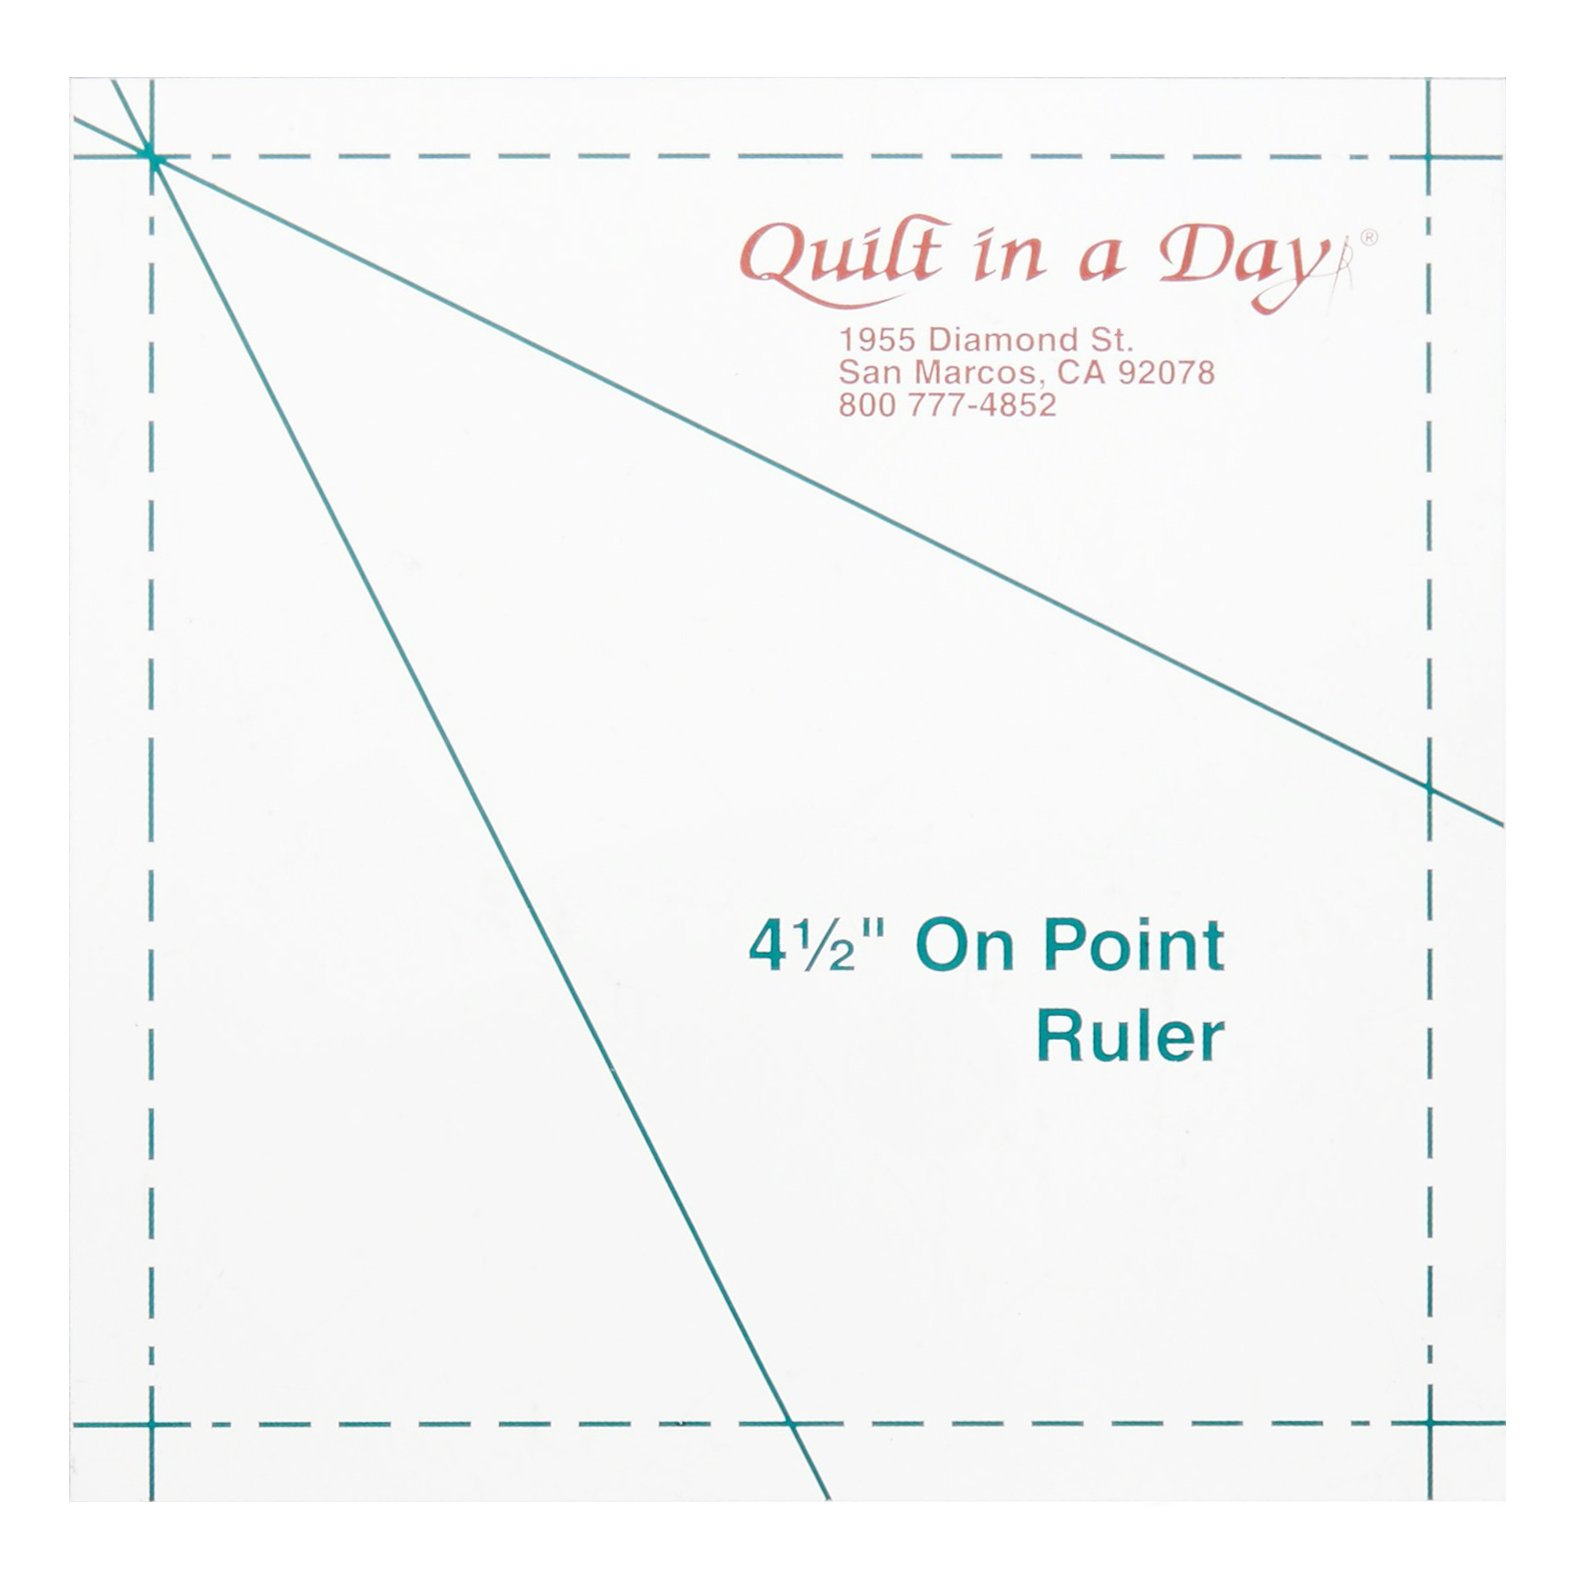 Quilt in a Day On Point Ruler - 4.5